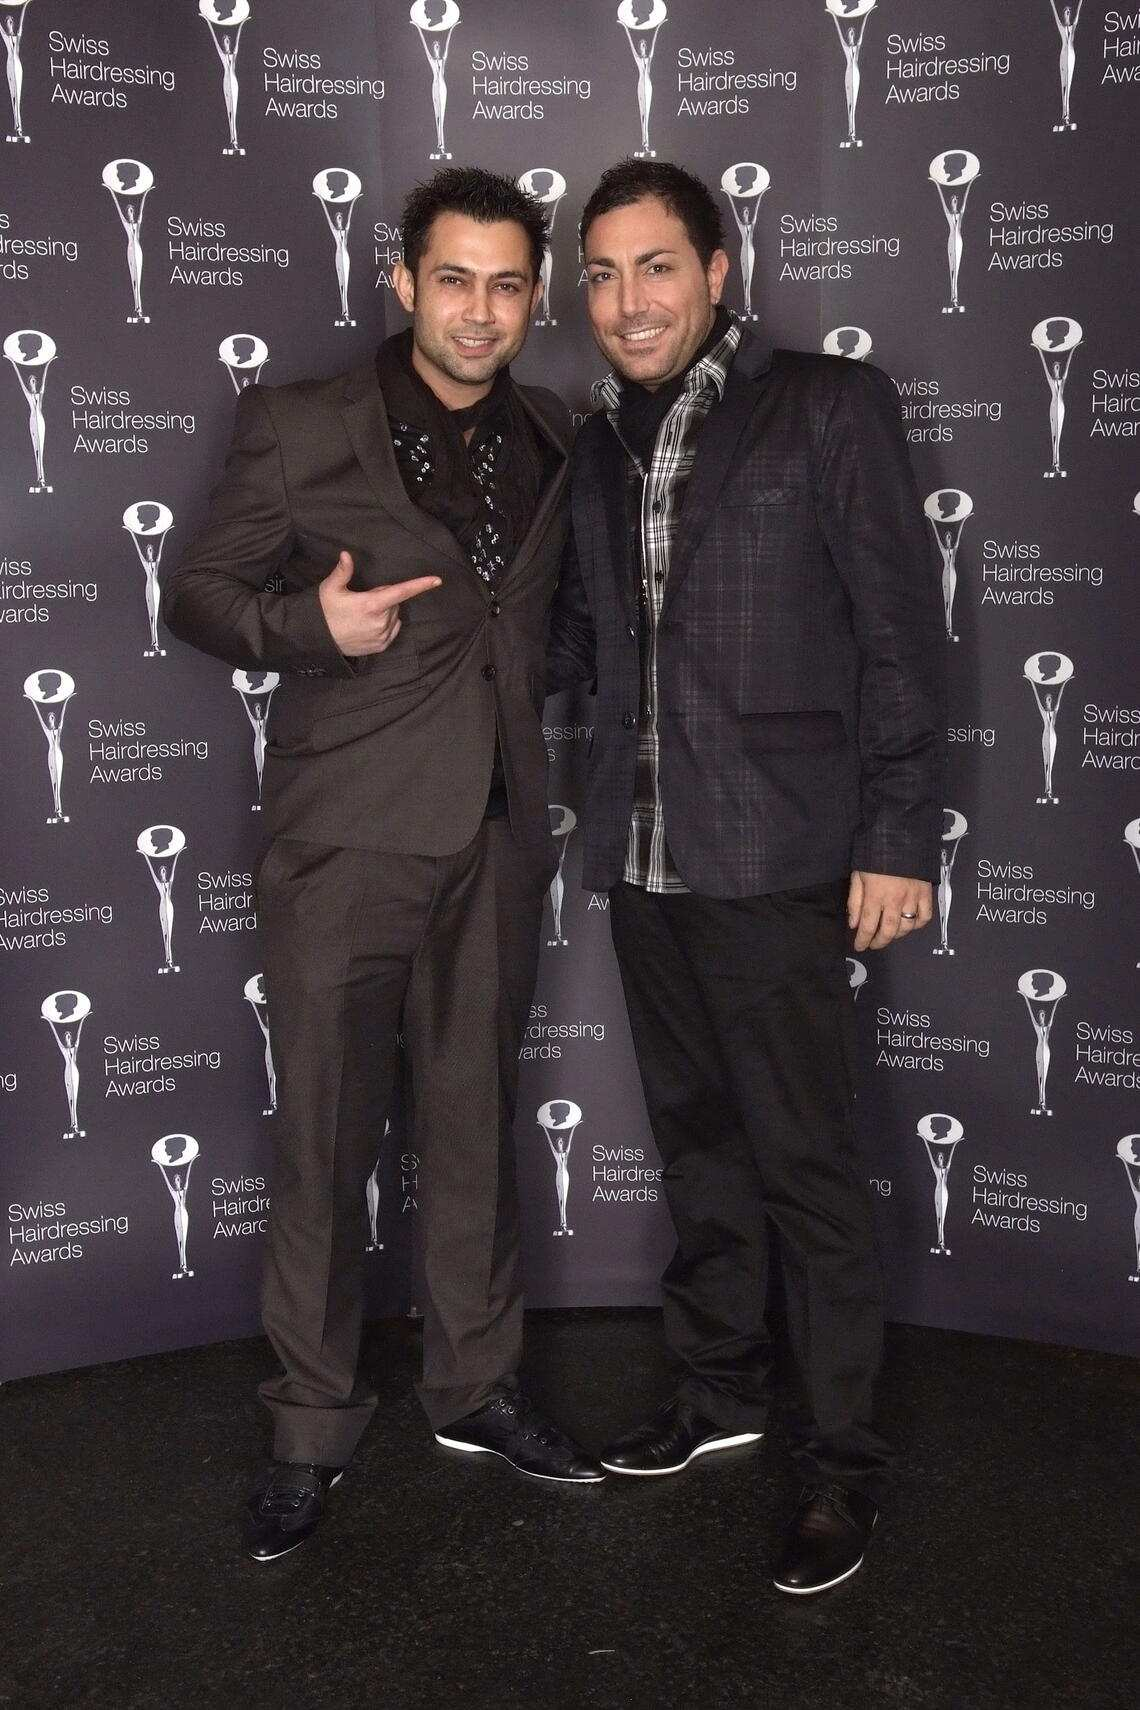 Swiss Hairdressing Award 2010 Giovanni Marchese Stylist